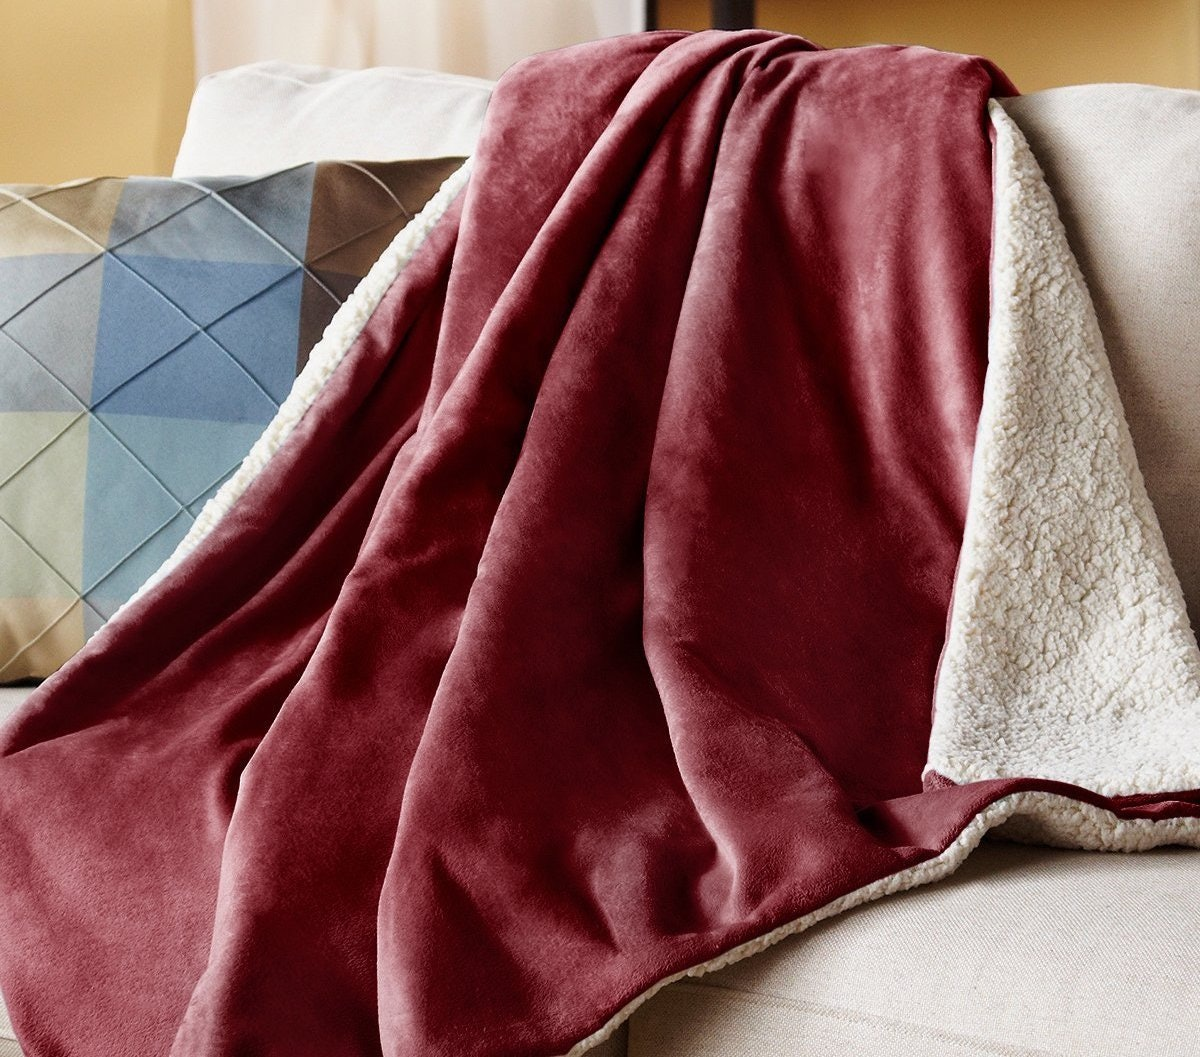 5 Best Electric Blankets To Keep You Warm